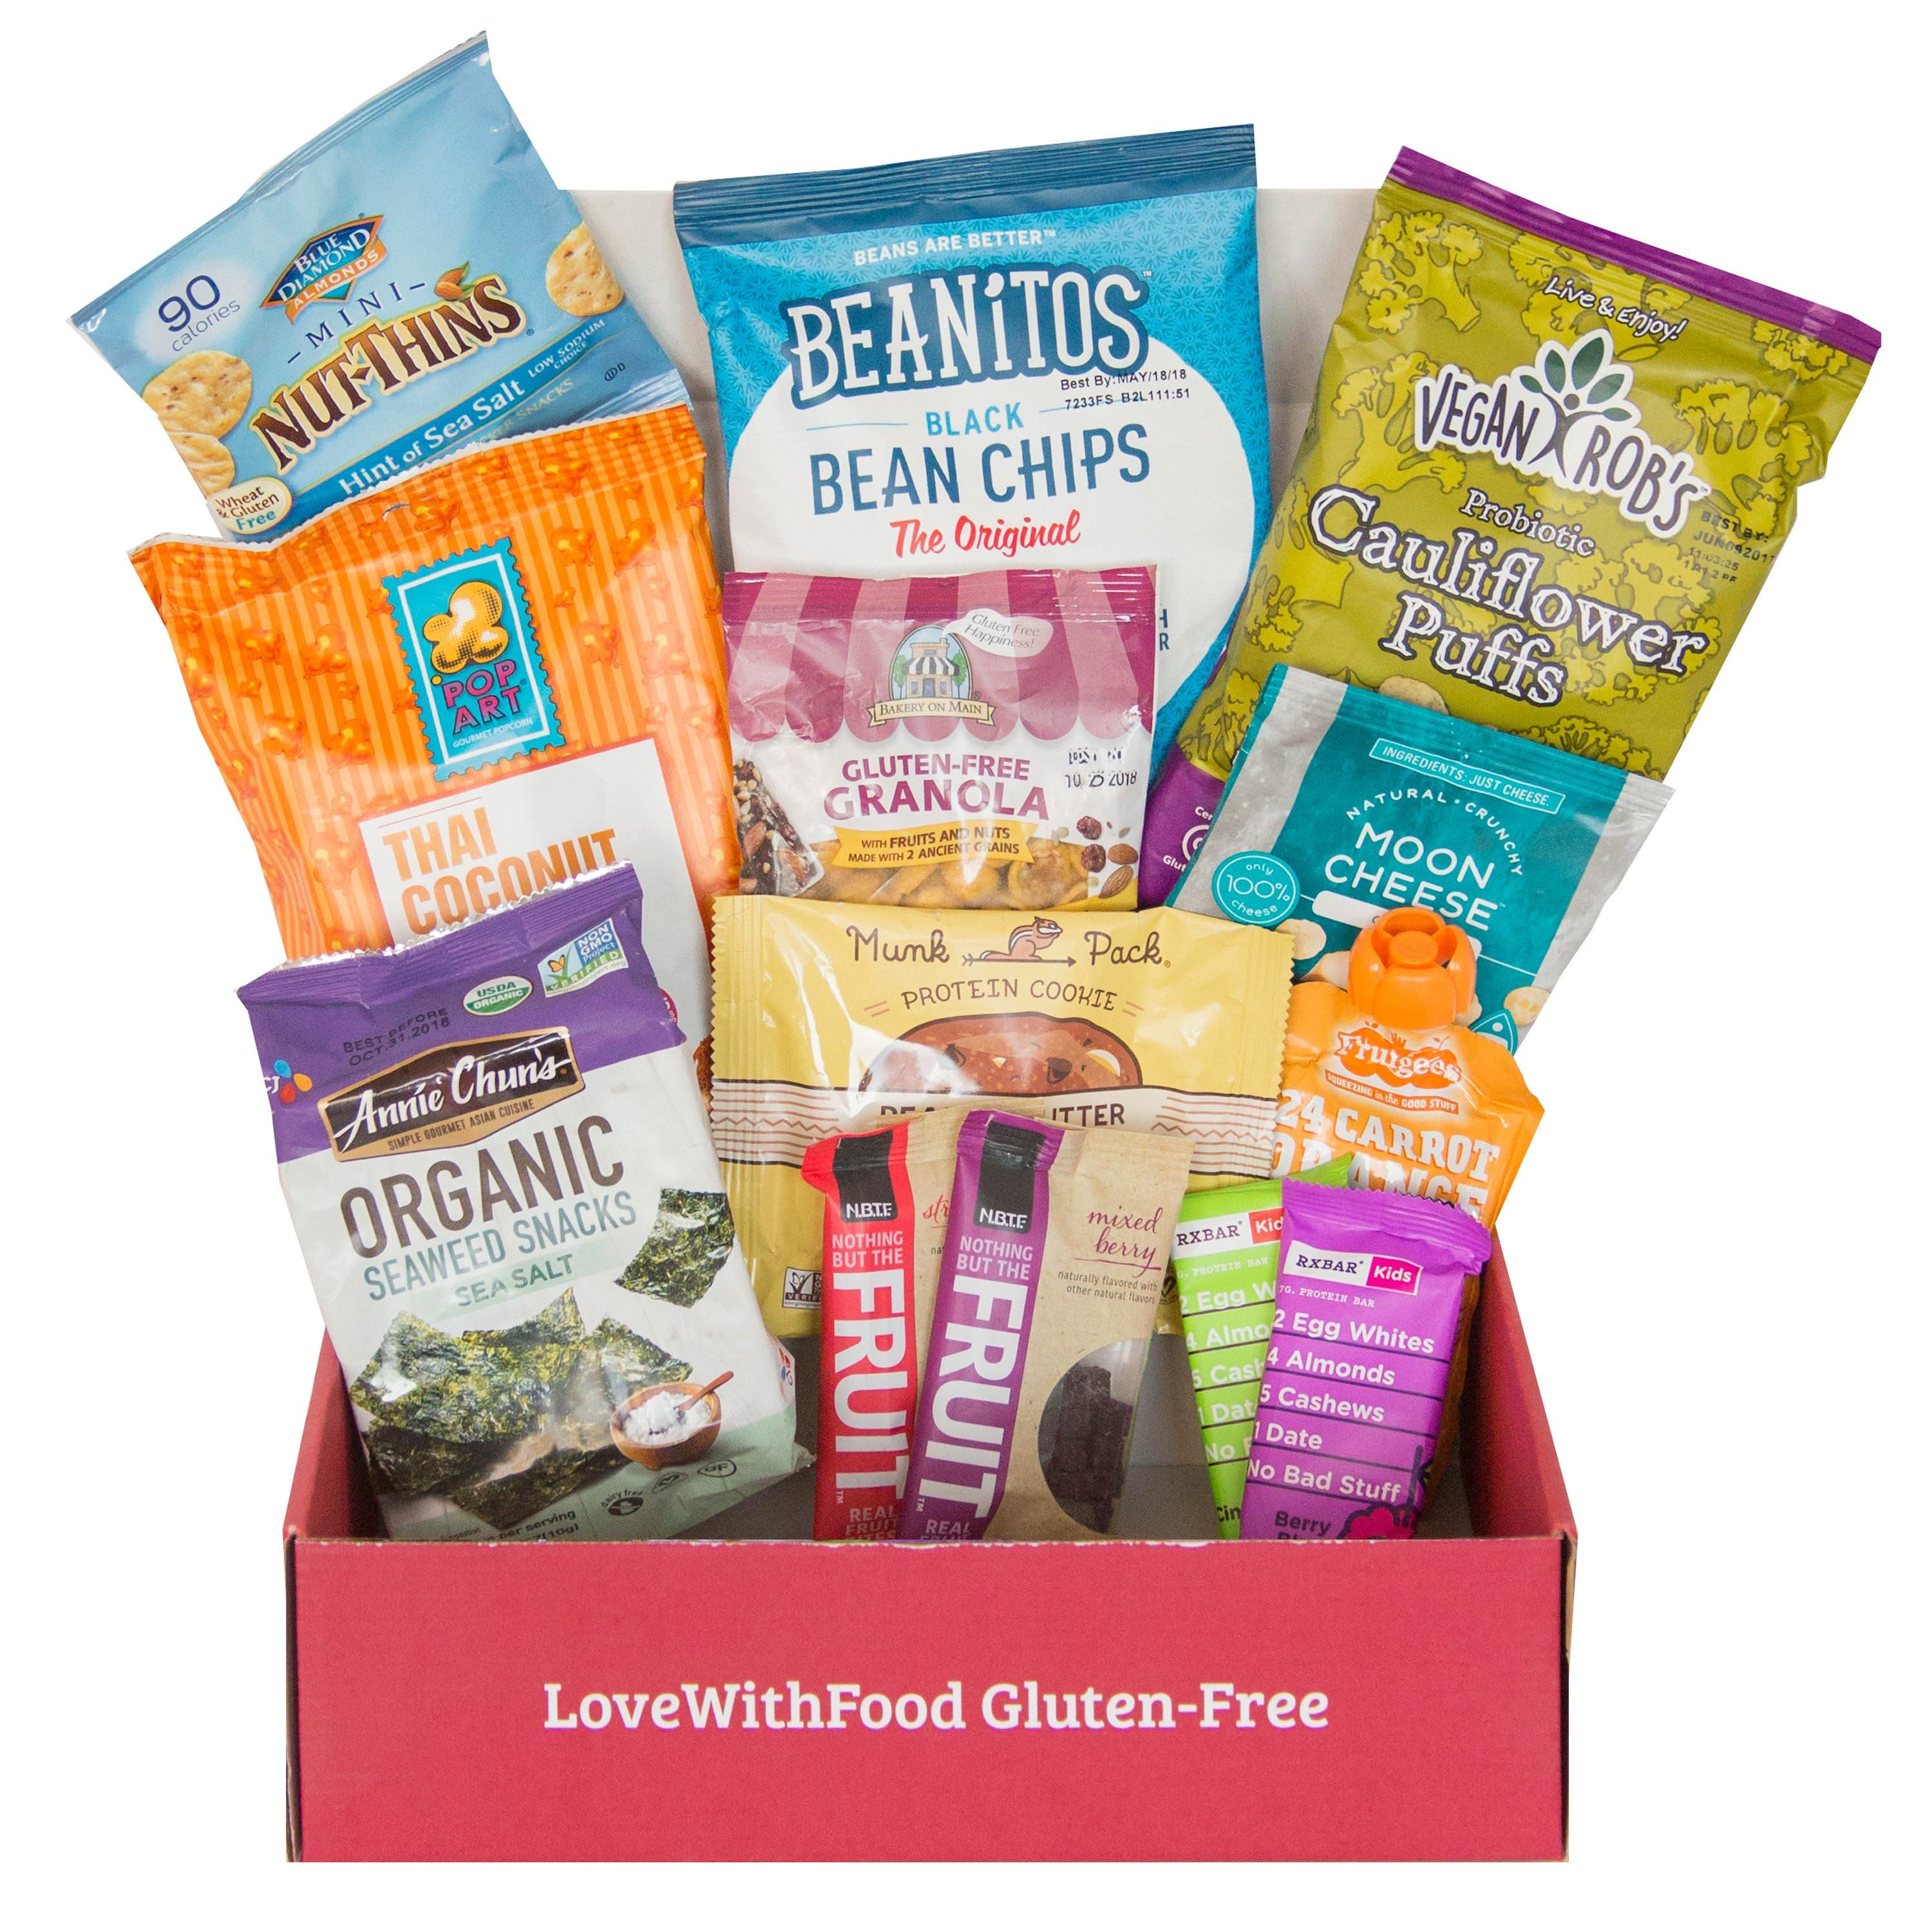 Love With Food Gluten-Free All-Natural, Artificial Junk-Free Snacks, Gluten-Free, 1 Ct